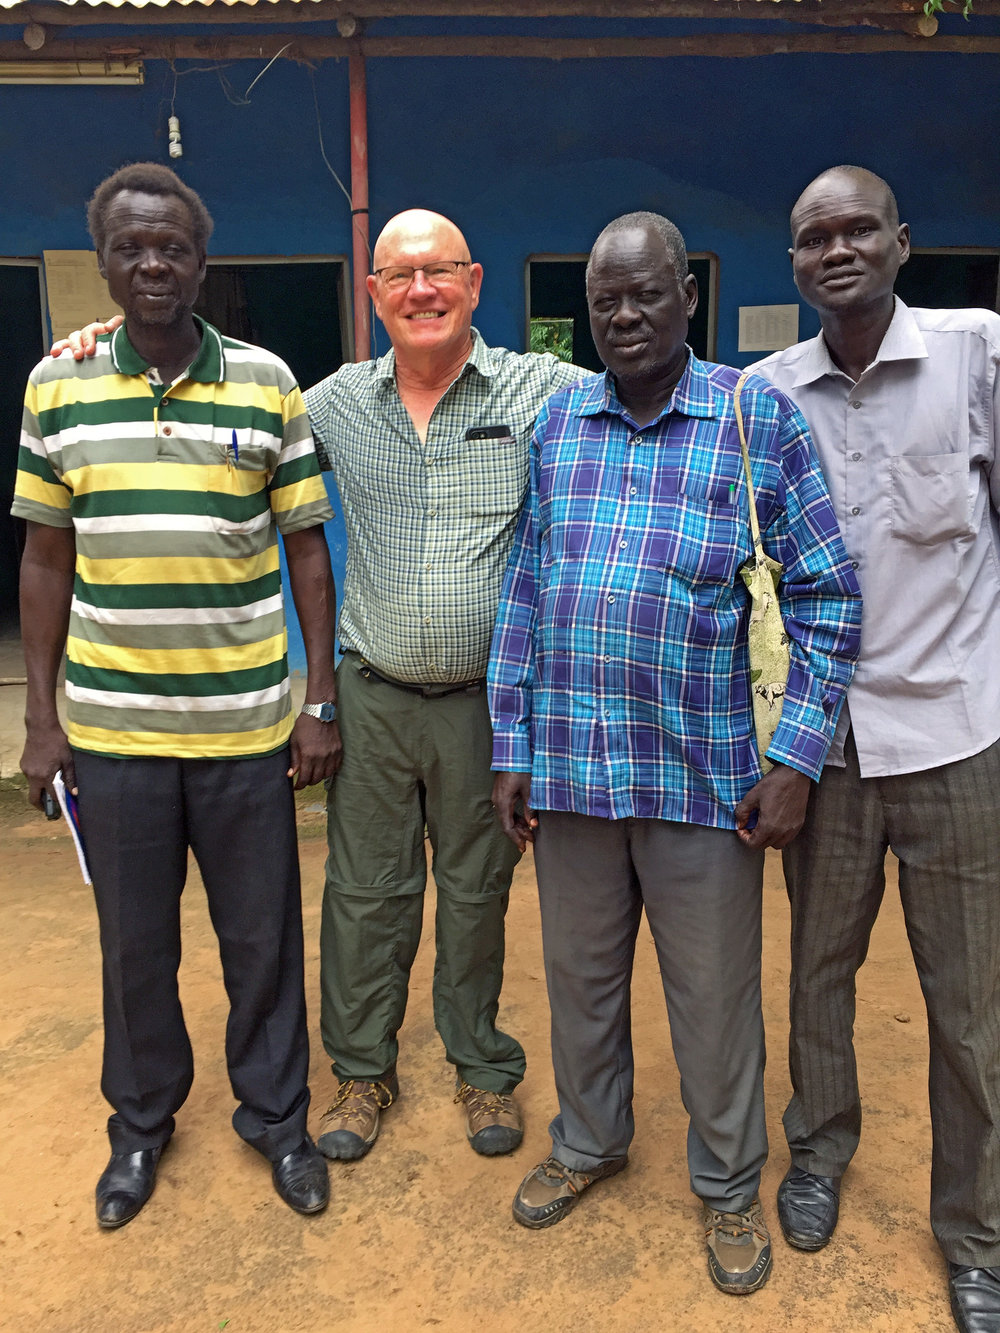 Chip Grammer with leaders from Akobo Presbytery.